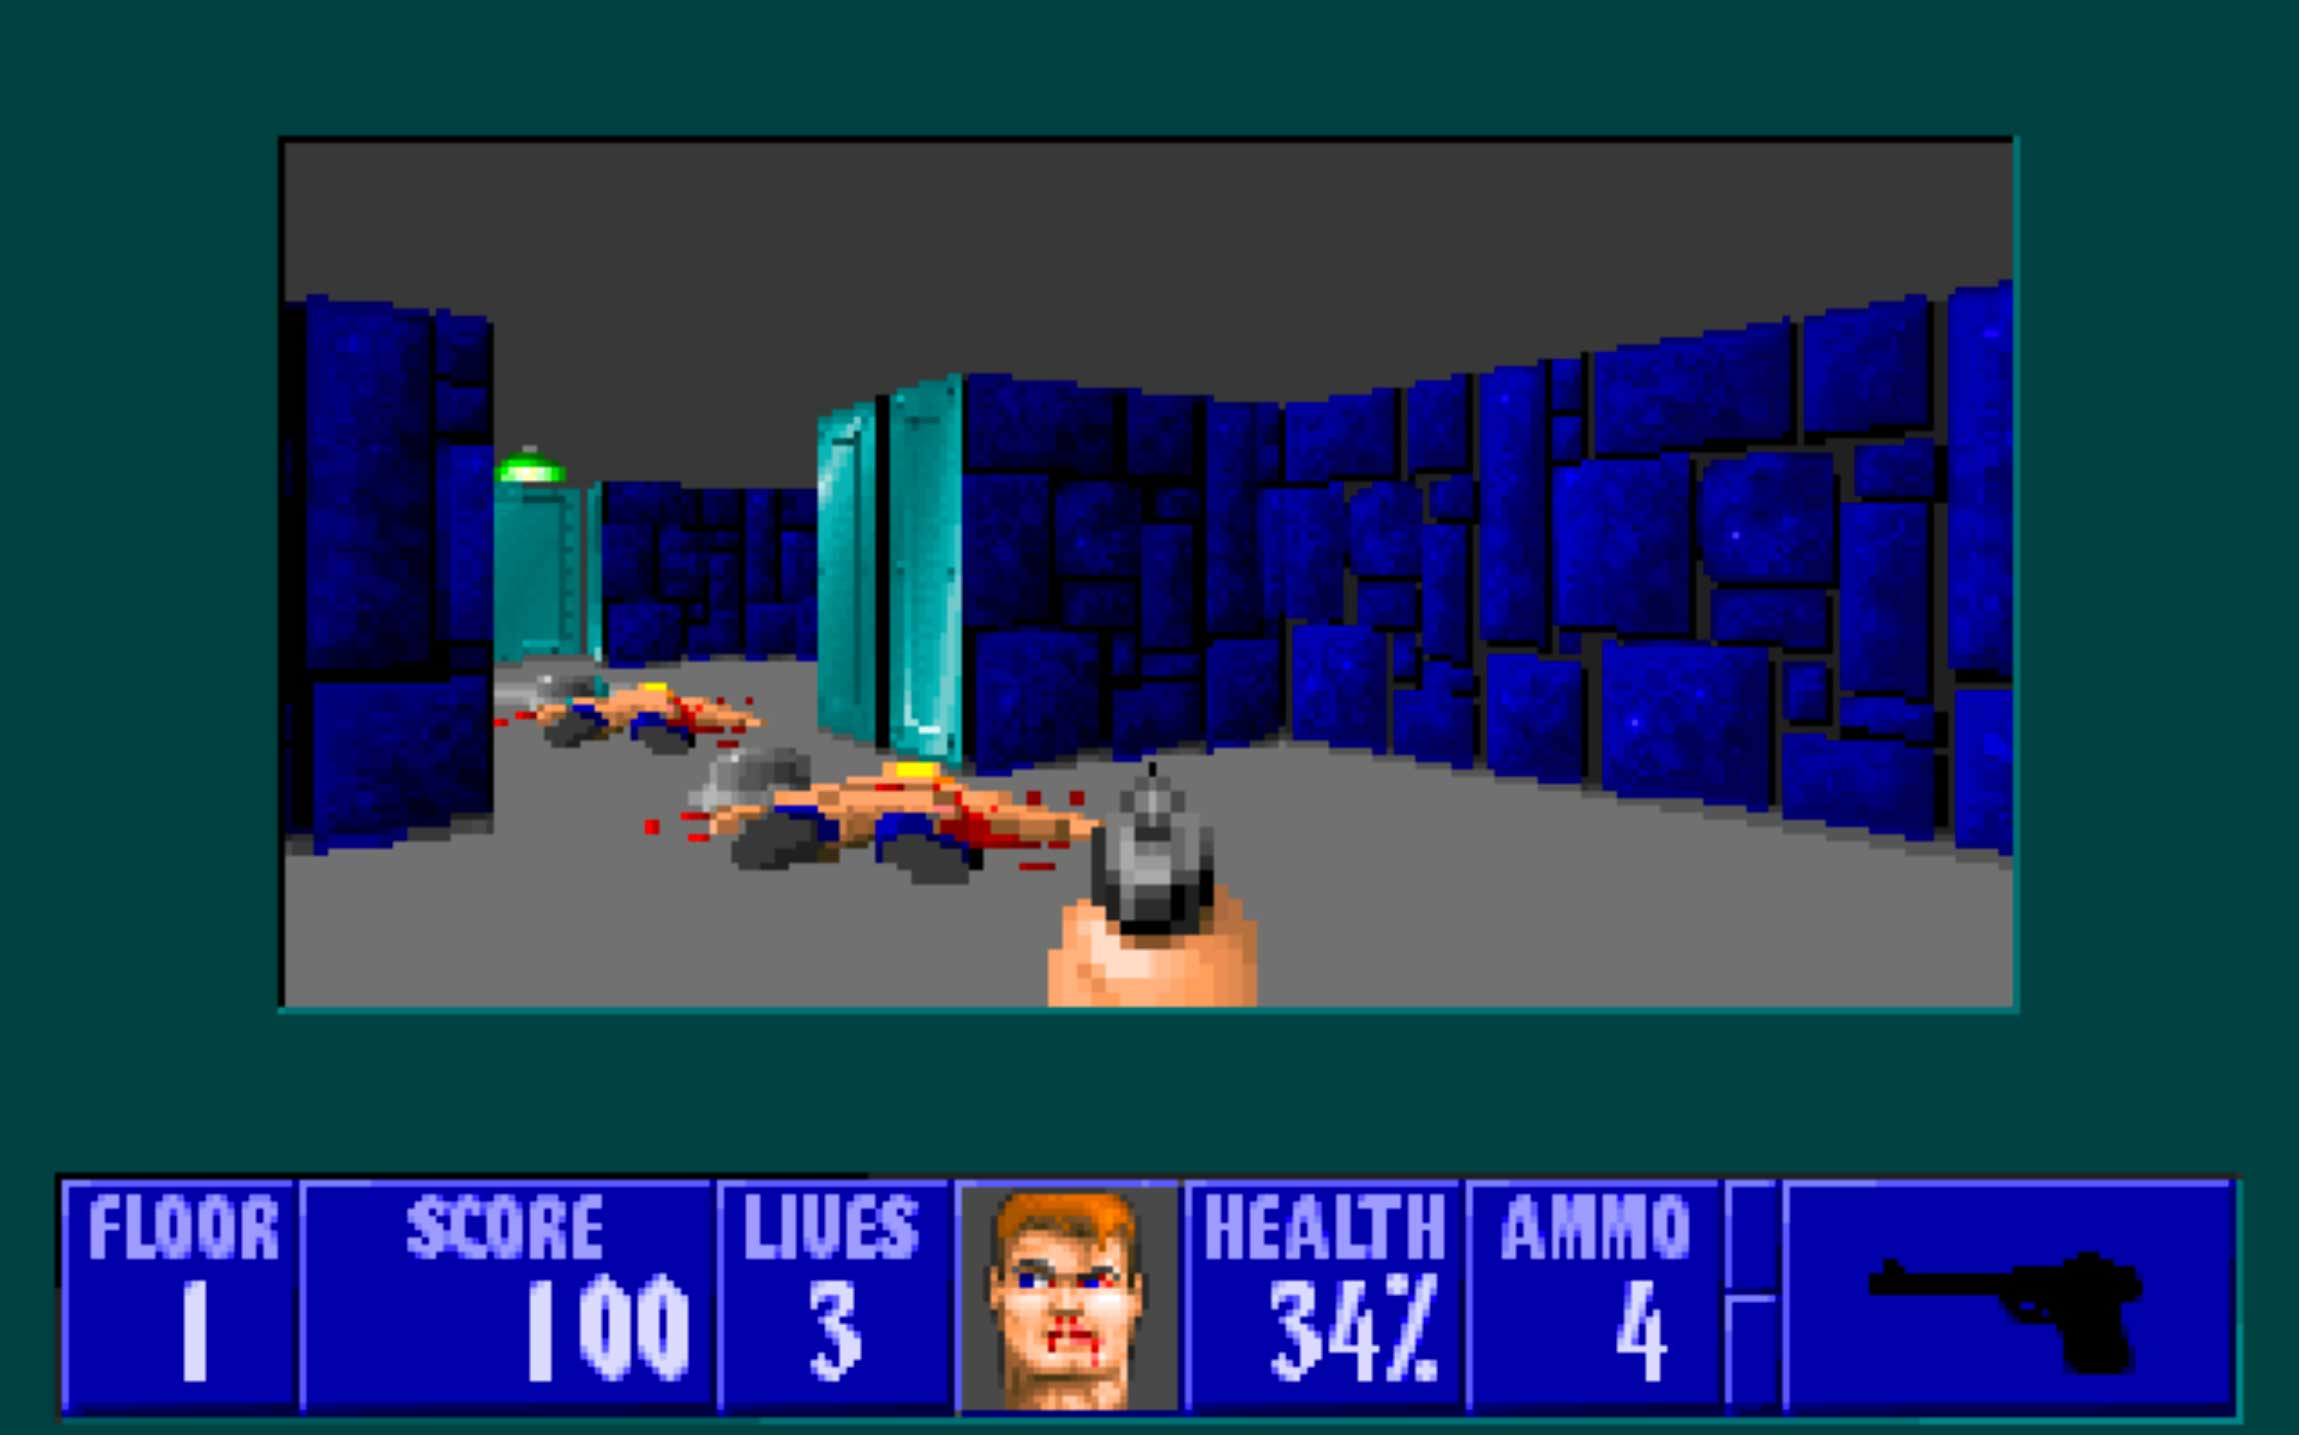 Wolfenstein 3D (1992)                                                               The precursor to Doom, Quake, and many of the gore-fests roaring across consoles today, this 1992 first-person shooter has you, as allied spy B.J. Blazkowicz, racing to escape the Nazi's clutches.